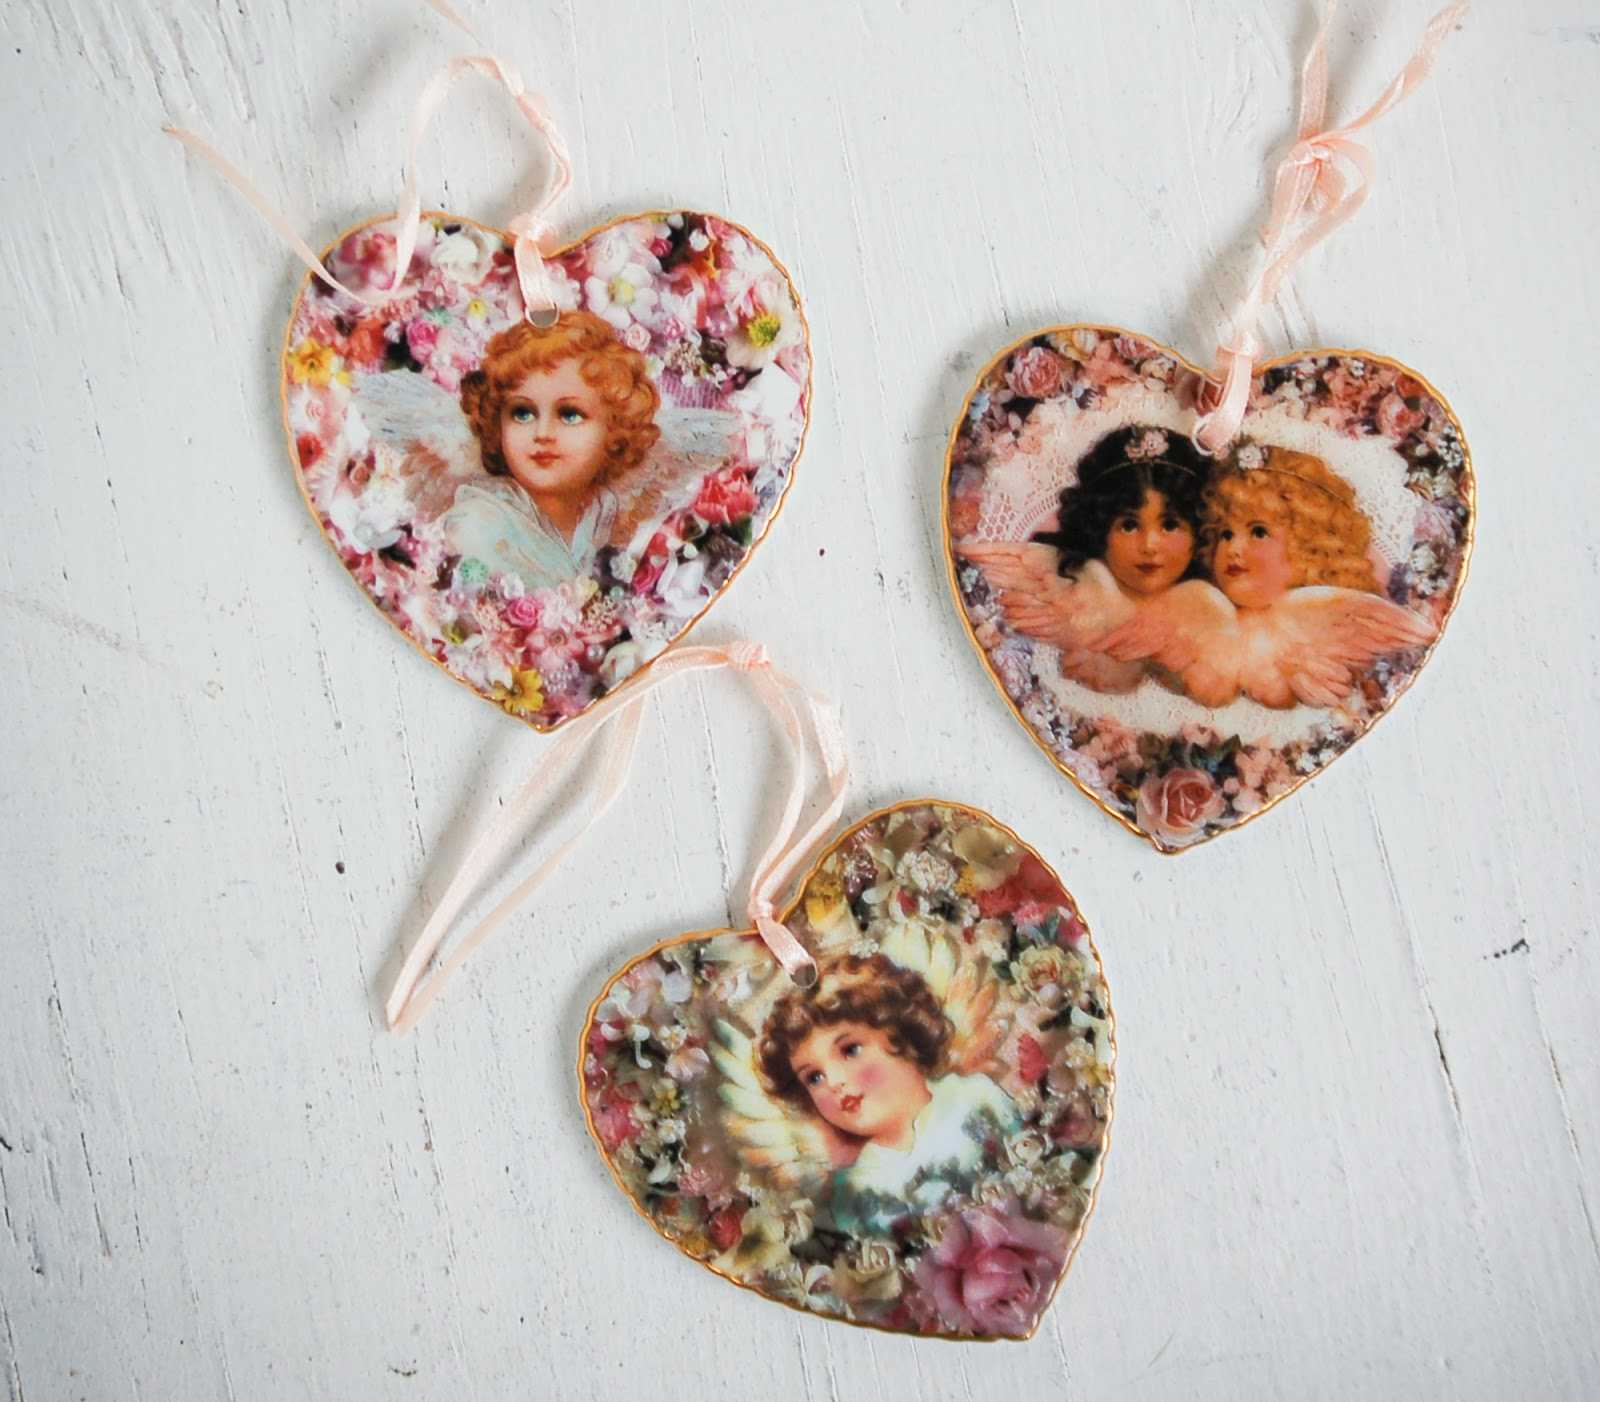 https://www.etsy.com/listing/64628395/3-vintage-porcelain-hearts-romantic?ref=shop_home_active_1&ga_search_query=heart%2Bornaments